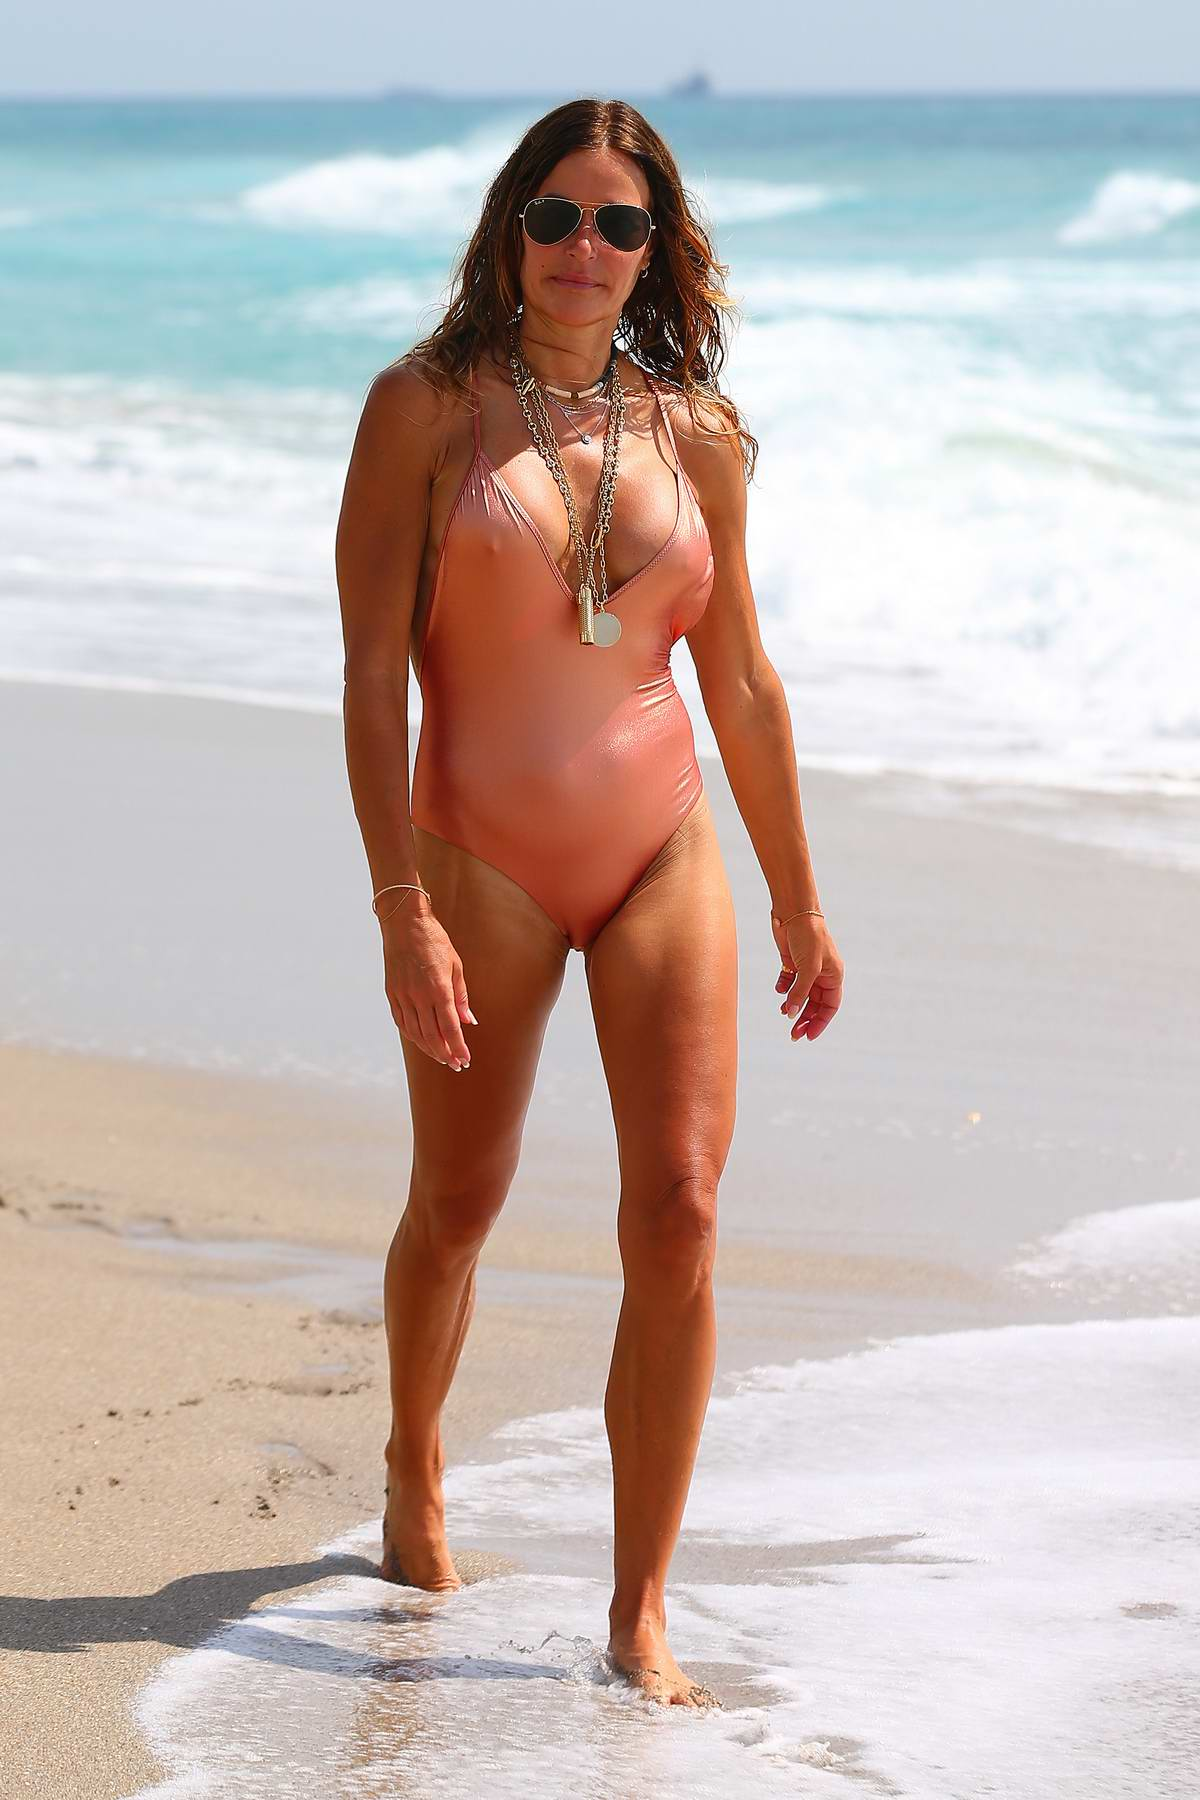 Kelly Bensimon spotted in a peach colored swimsuit as she enjoys the beach in Palm Beach, Florida